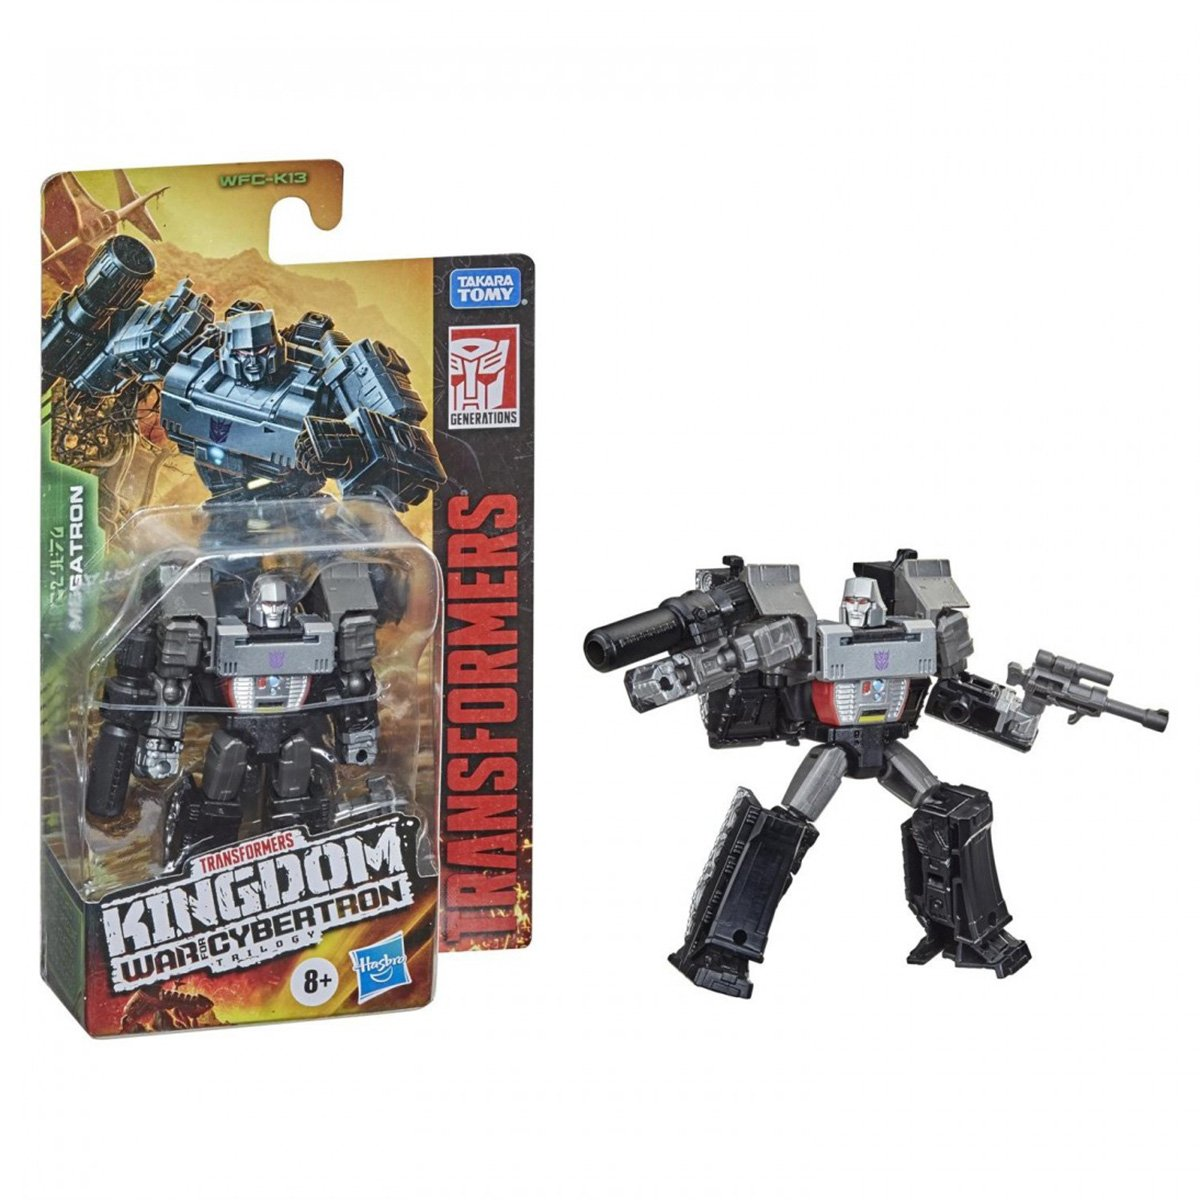 Figurina Transformers Kingdom WFC, Megatron F0666